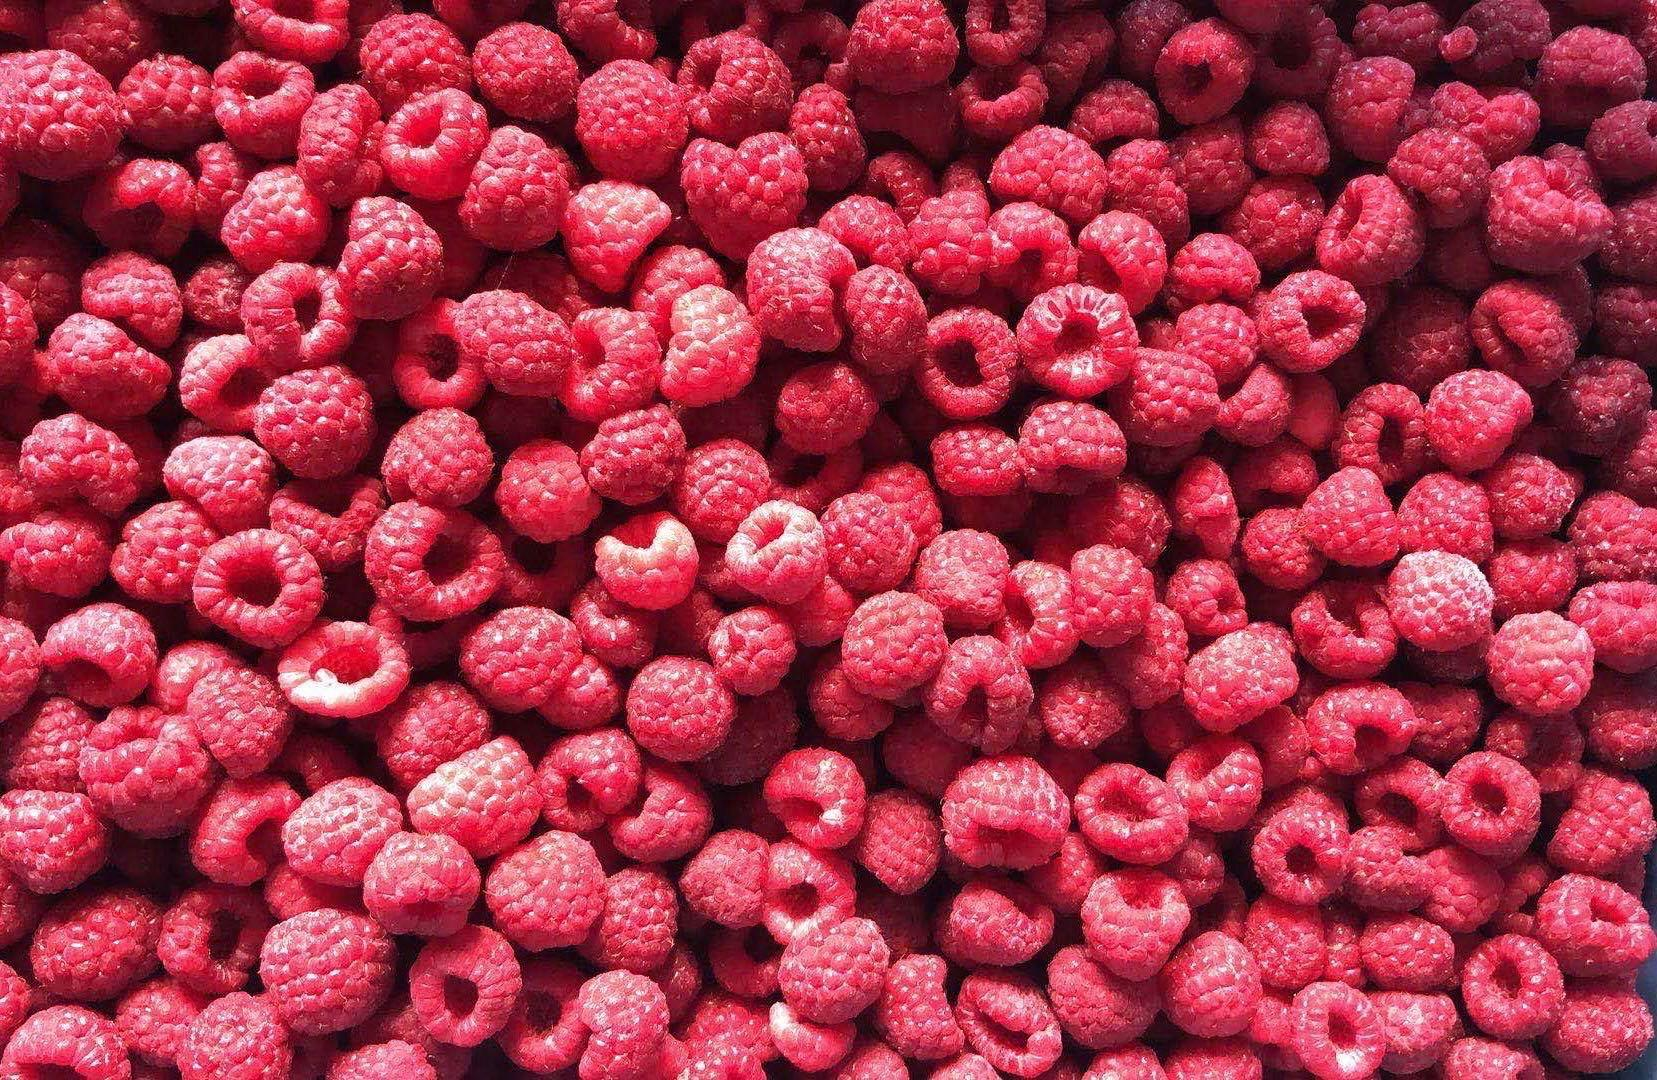 IQF raspberries crumbles,Frozen raspberry crumbles,red,cultivated 19